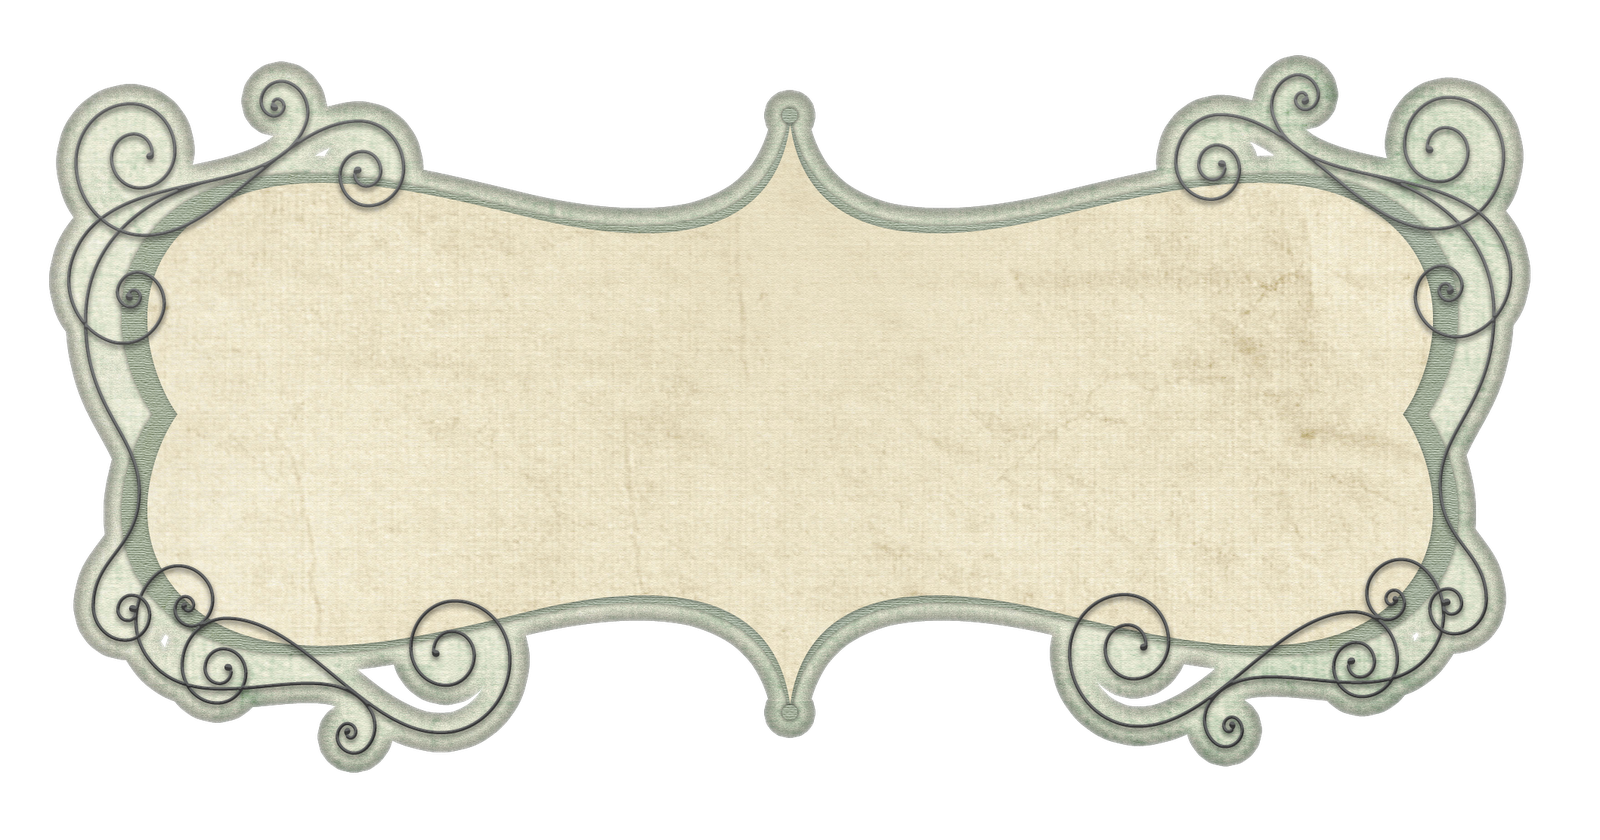 Doodle frame vector png. Free cu border template